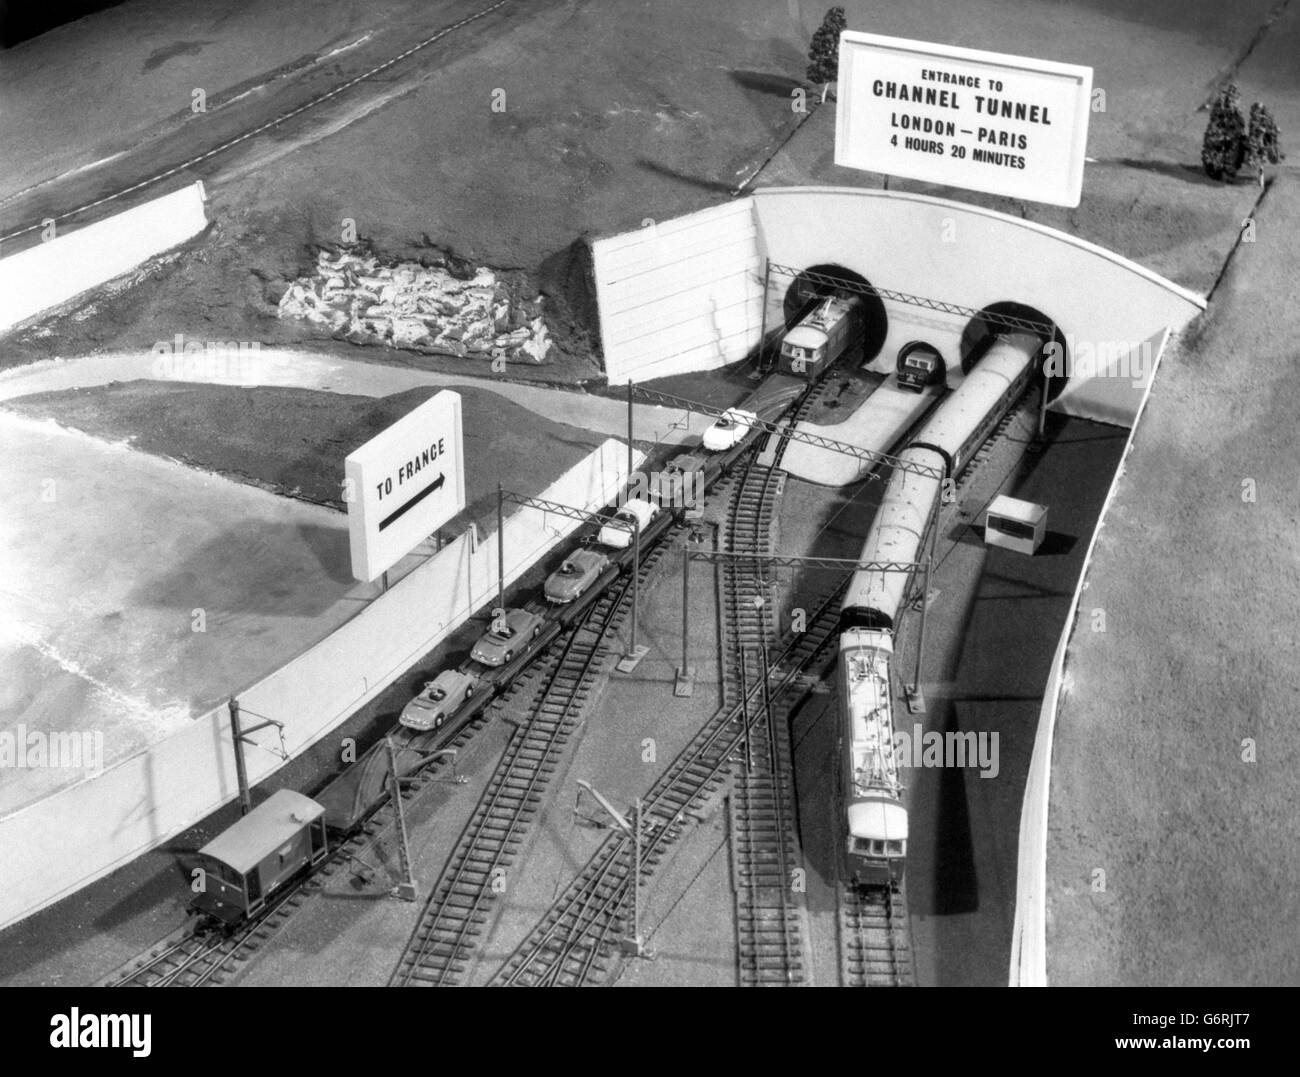 Channel Tunnel - Working Model - 1962 - Stock Image